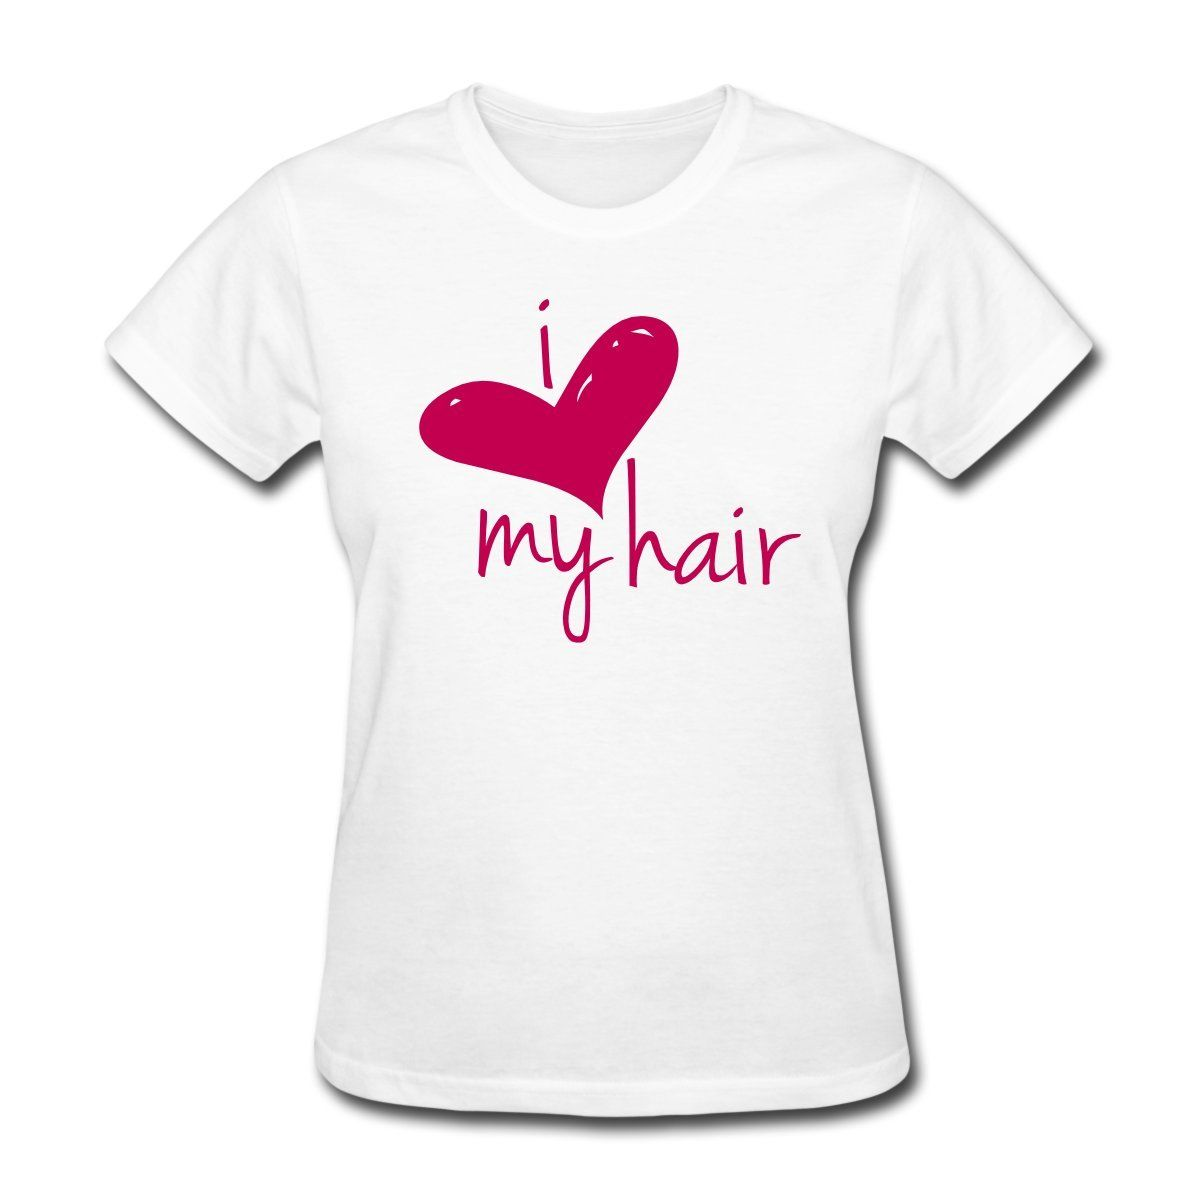 Love My Hair Length Check Women's T-Shirt Fashion Summer Sexy T Shirt On Sale Woman Tee Shirts Fashion Women Comfortable Brand